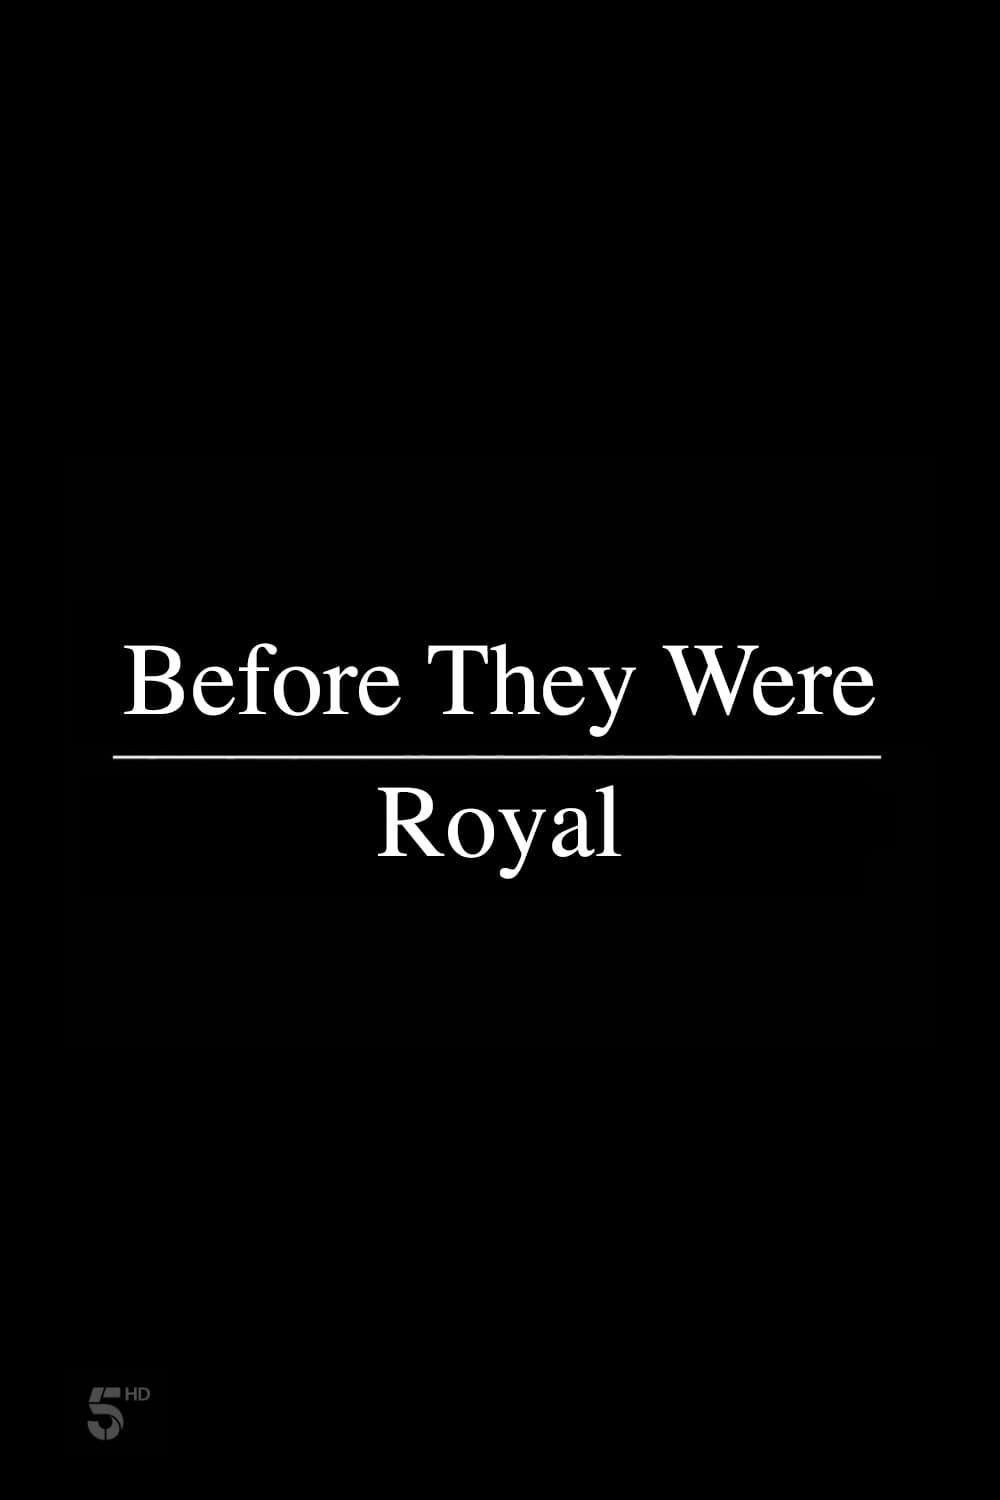 Before They Were Royal TV Shows About Royal Family